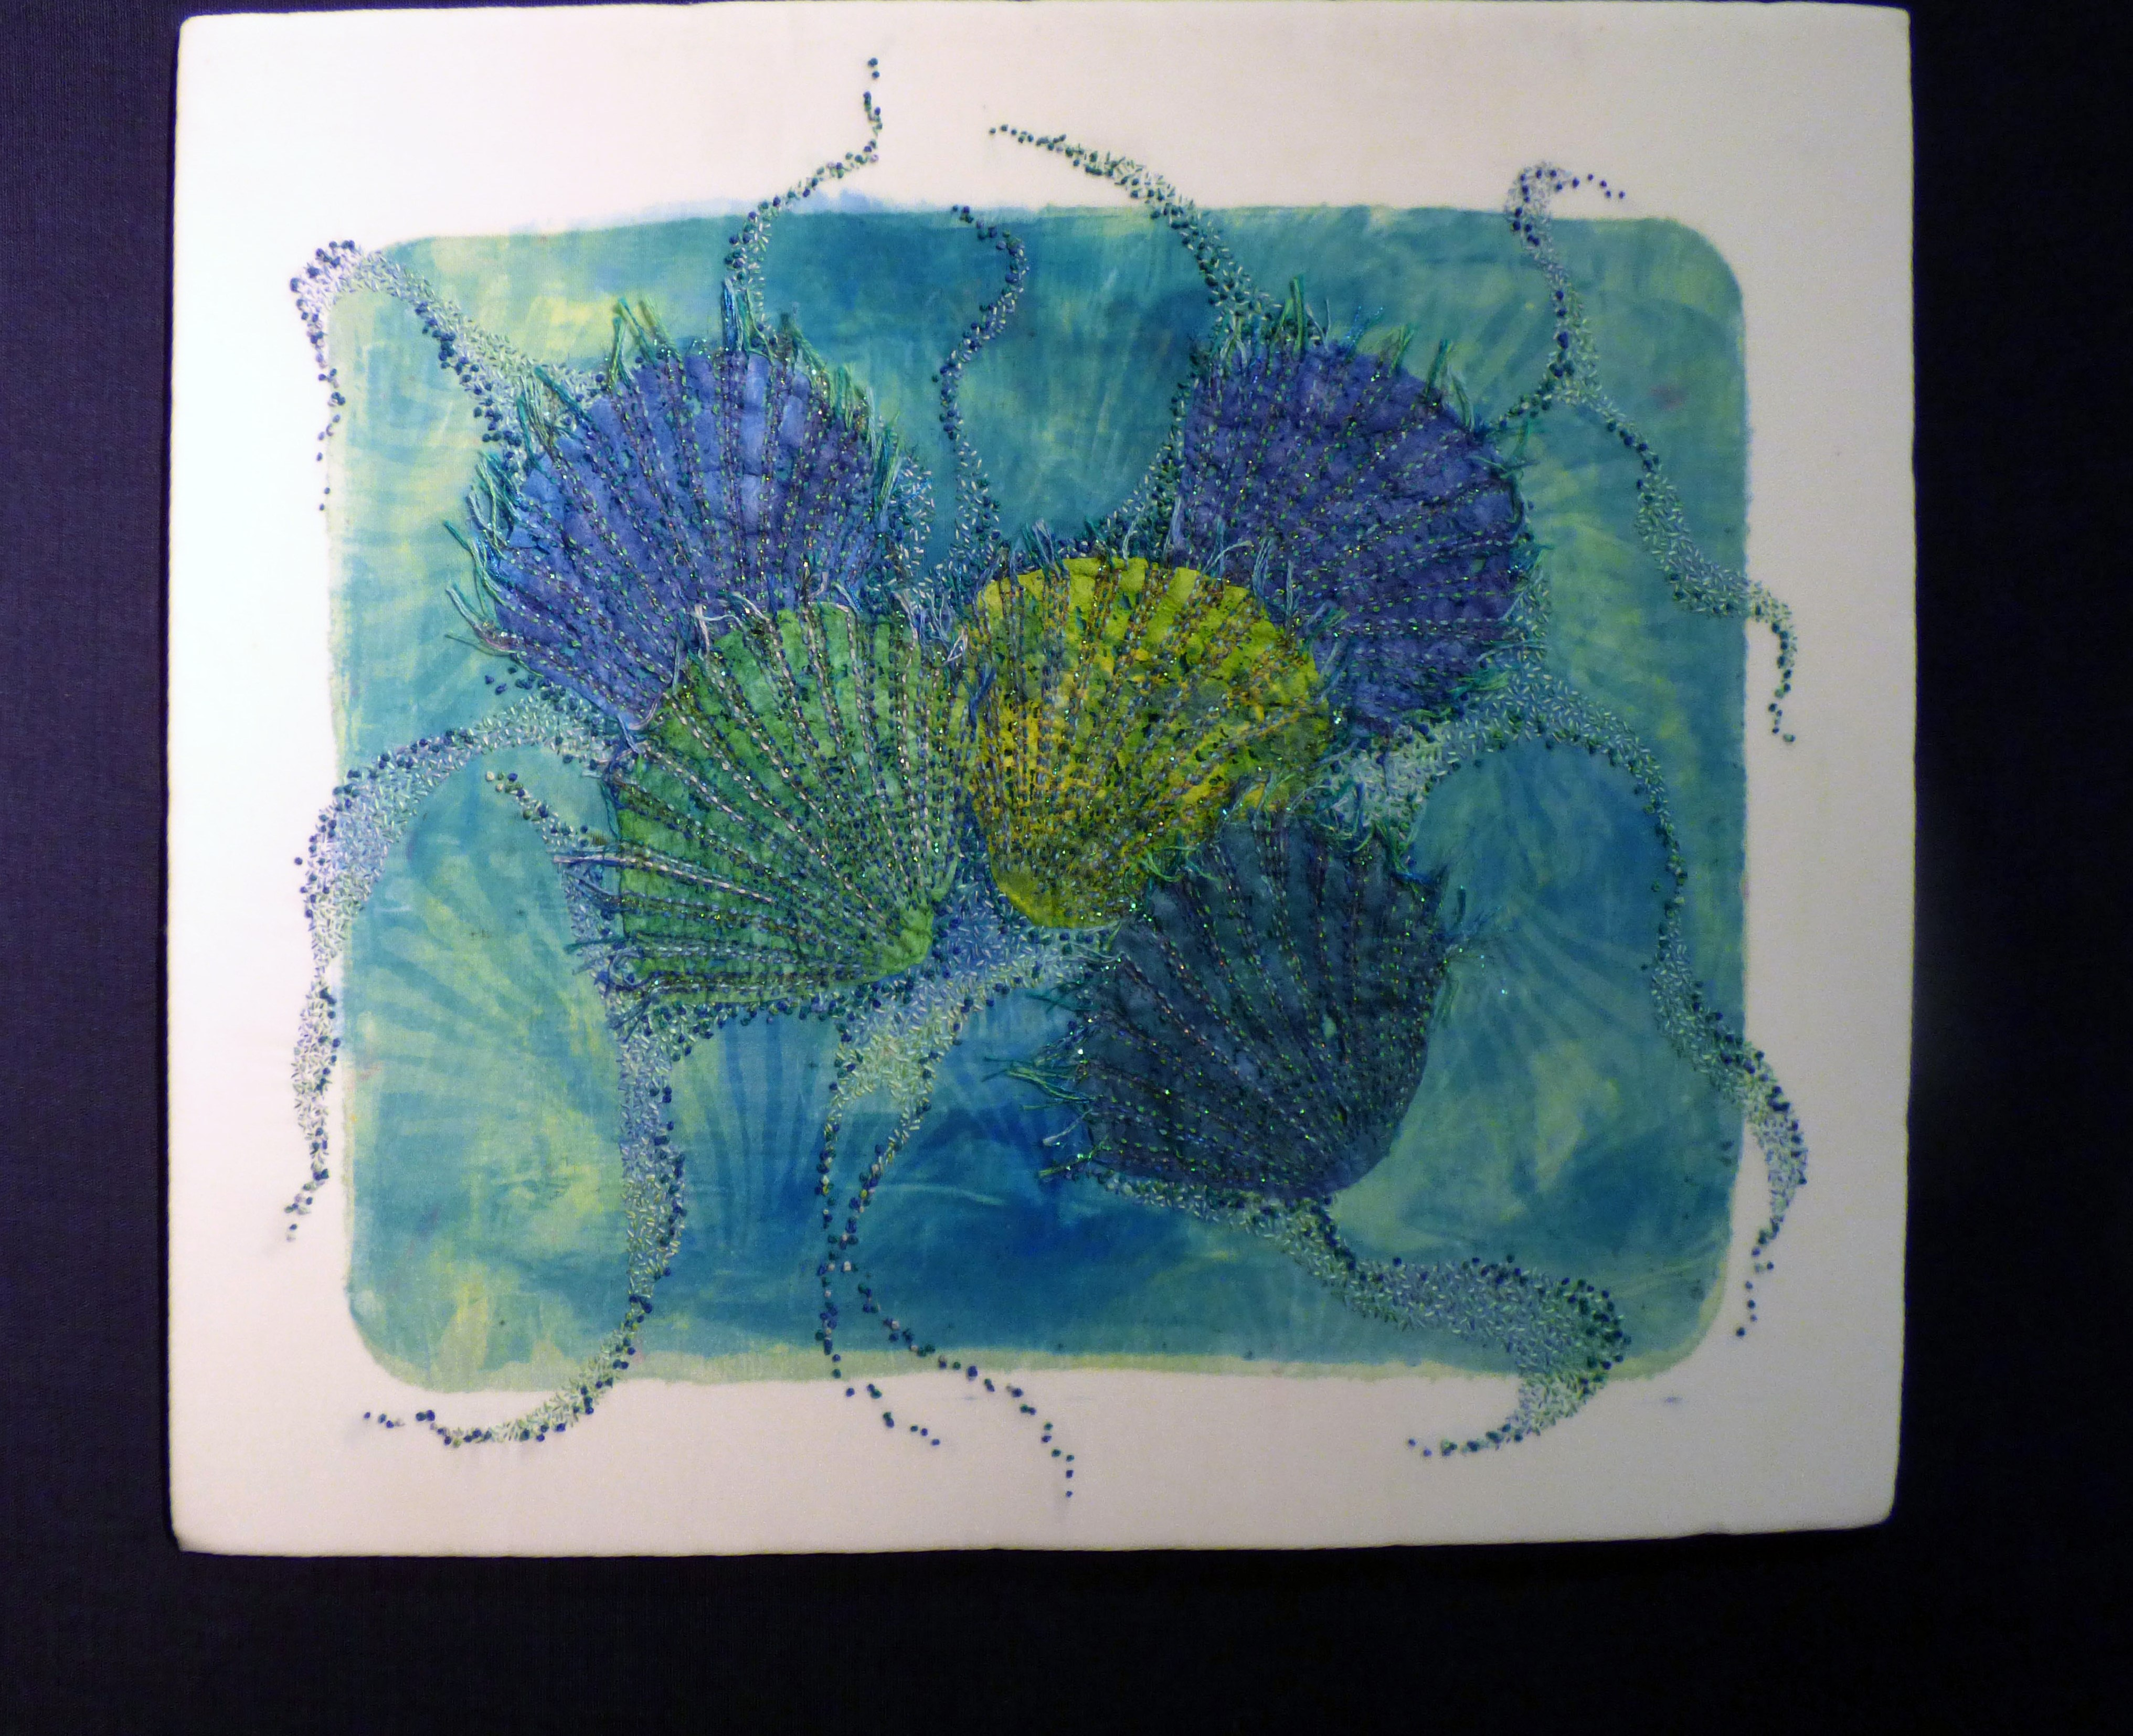 SHELL STUDY by Lynda Edwardes, hand embroidery on dyed and distressed fabric